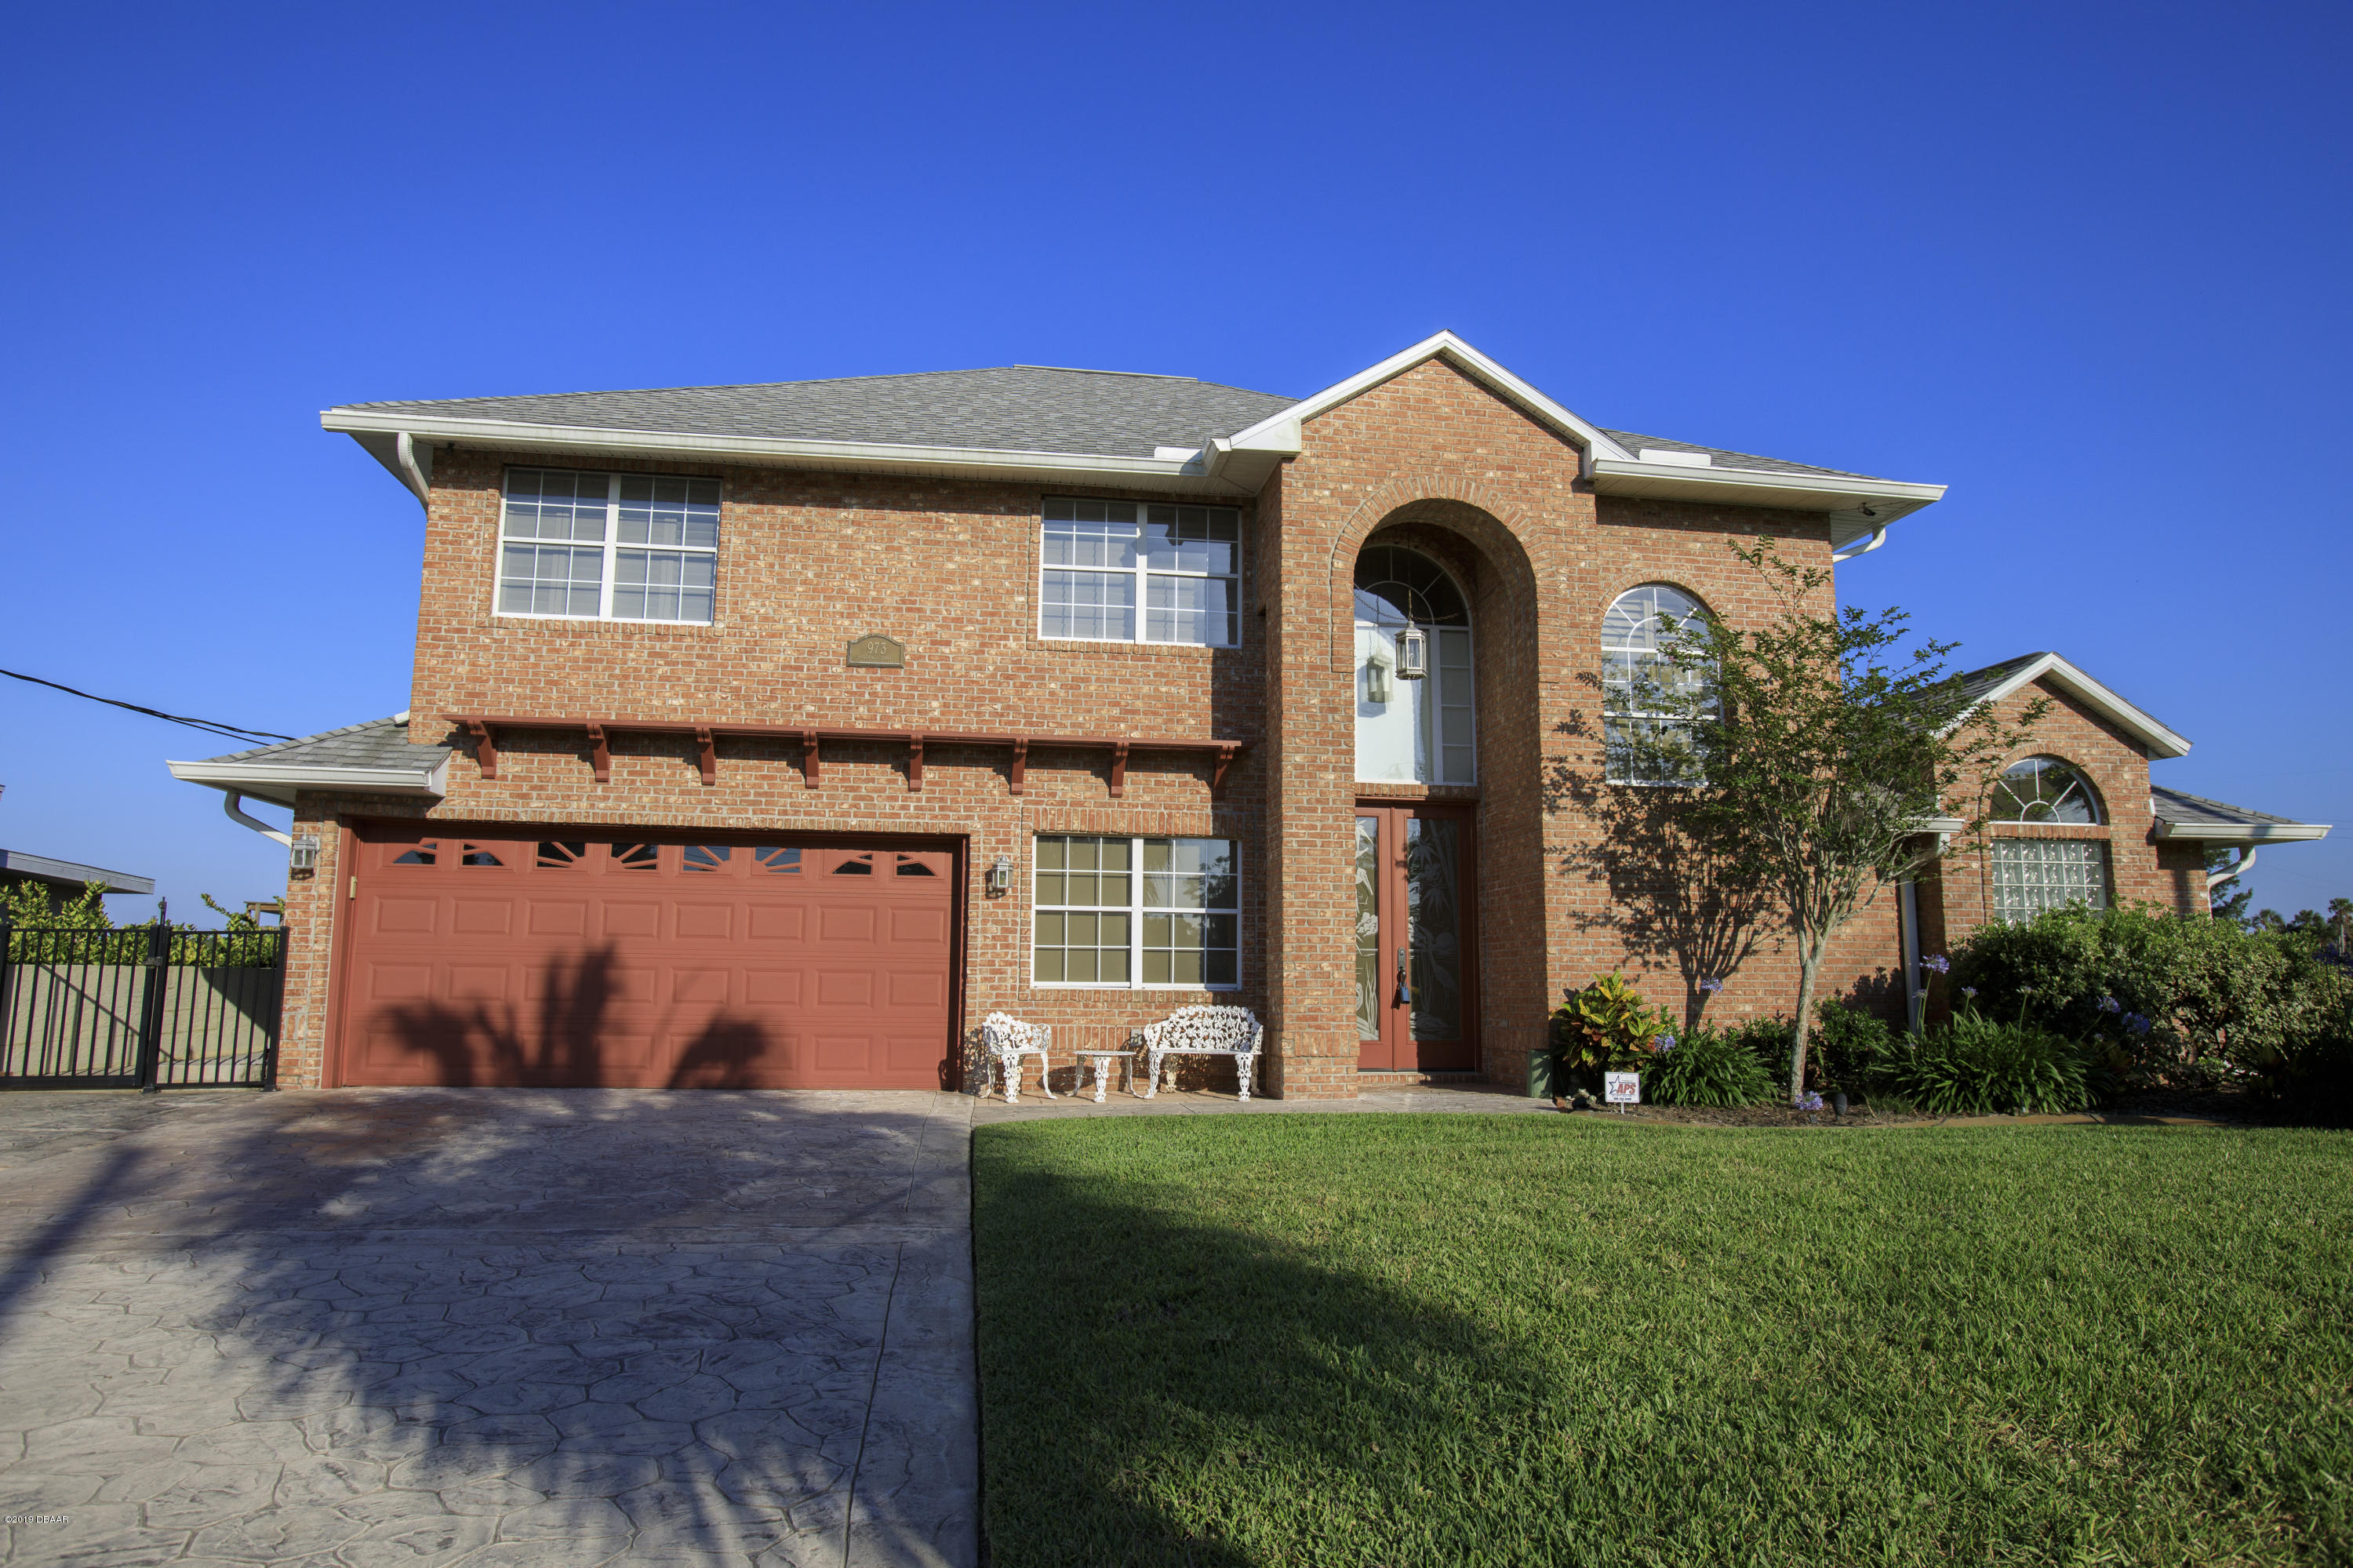 973 Shockney Drive, Ormond Beach, Florida